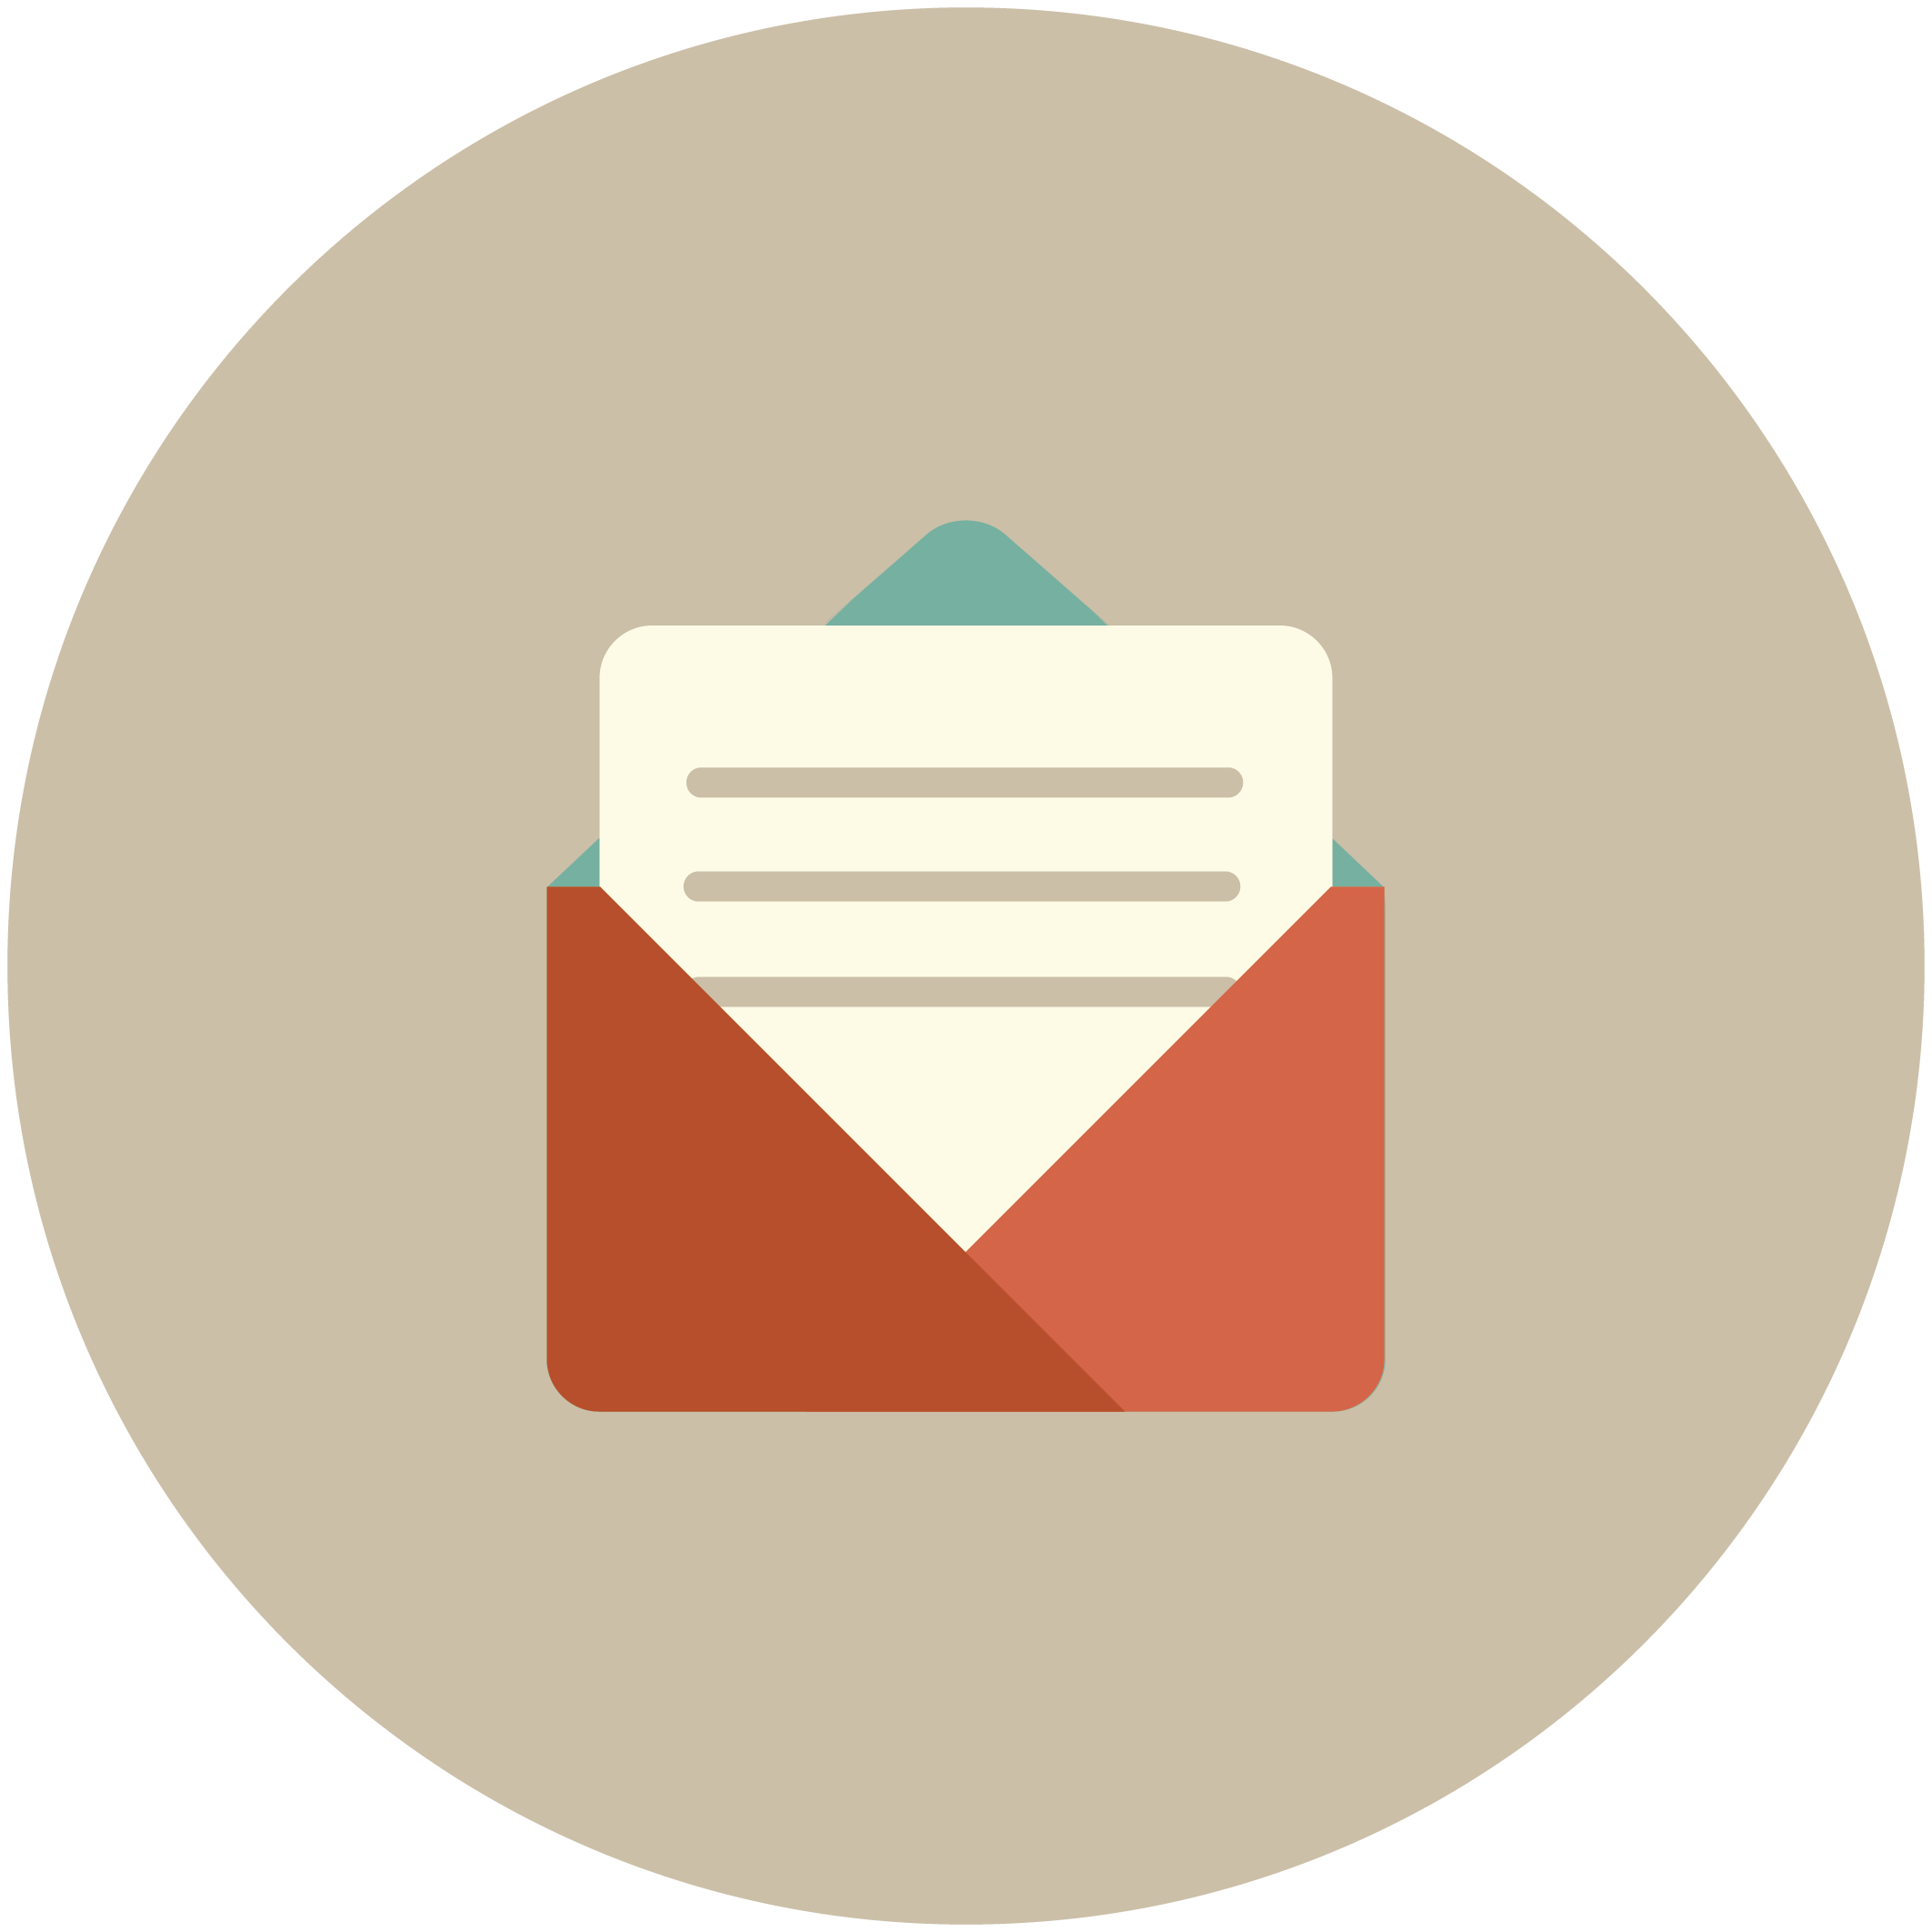 Email Flat Icon Png image #40279